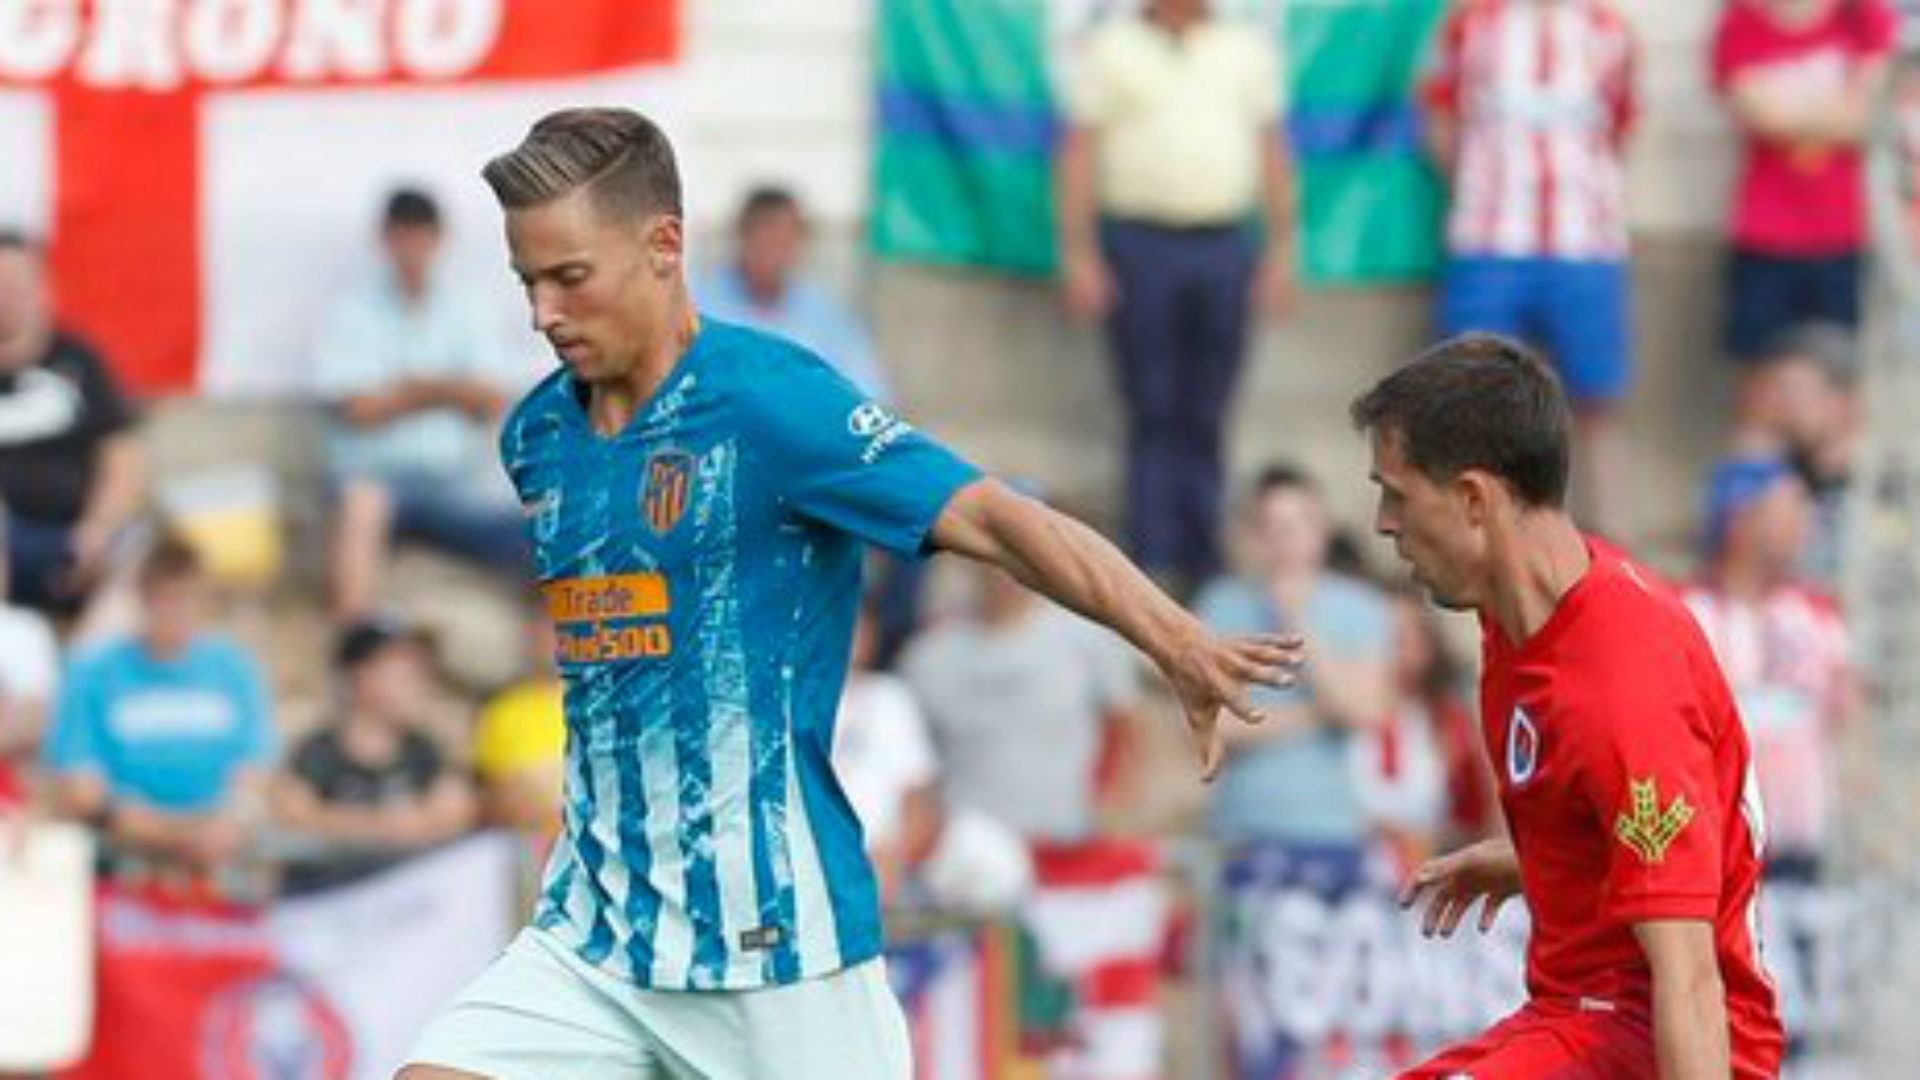 Atletico Madrid lose Joao Felix to injury as post-Griezmann era starts with win at Numancia